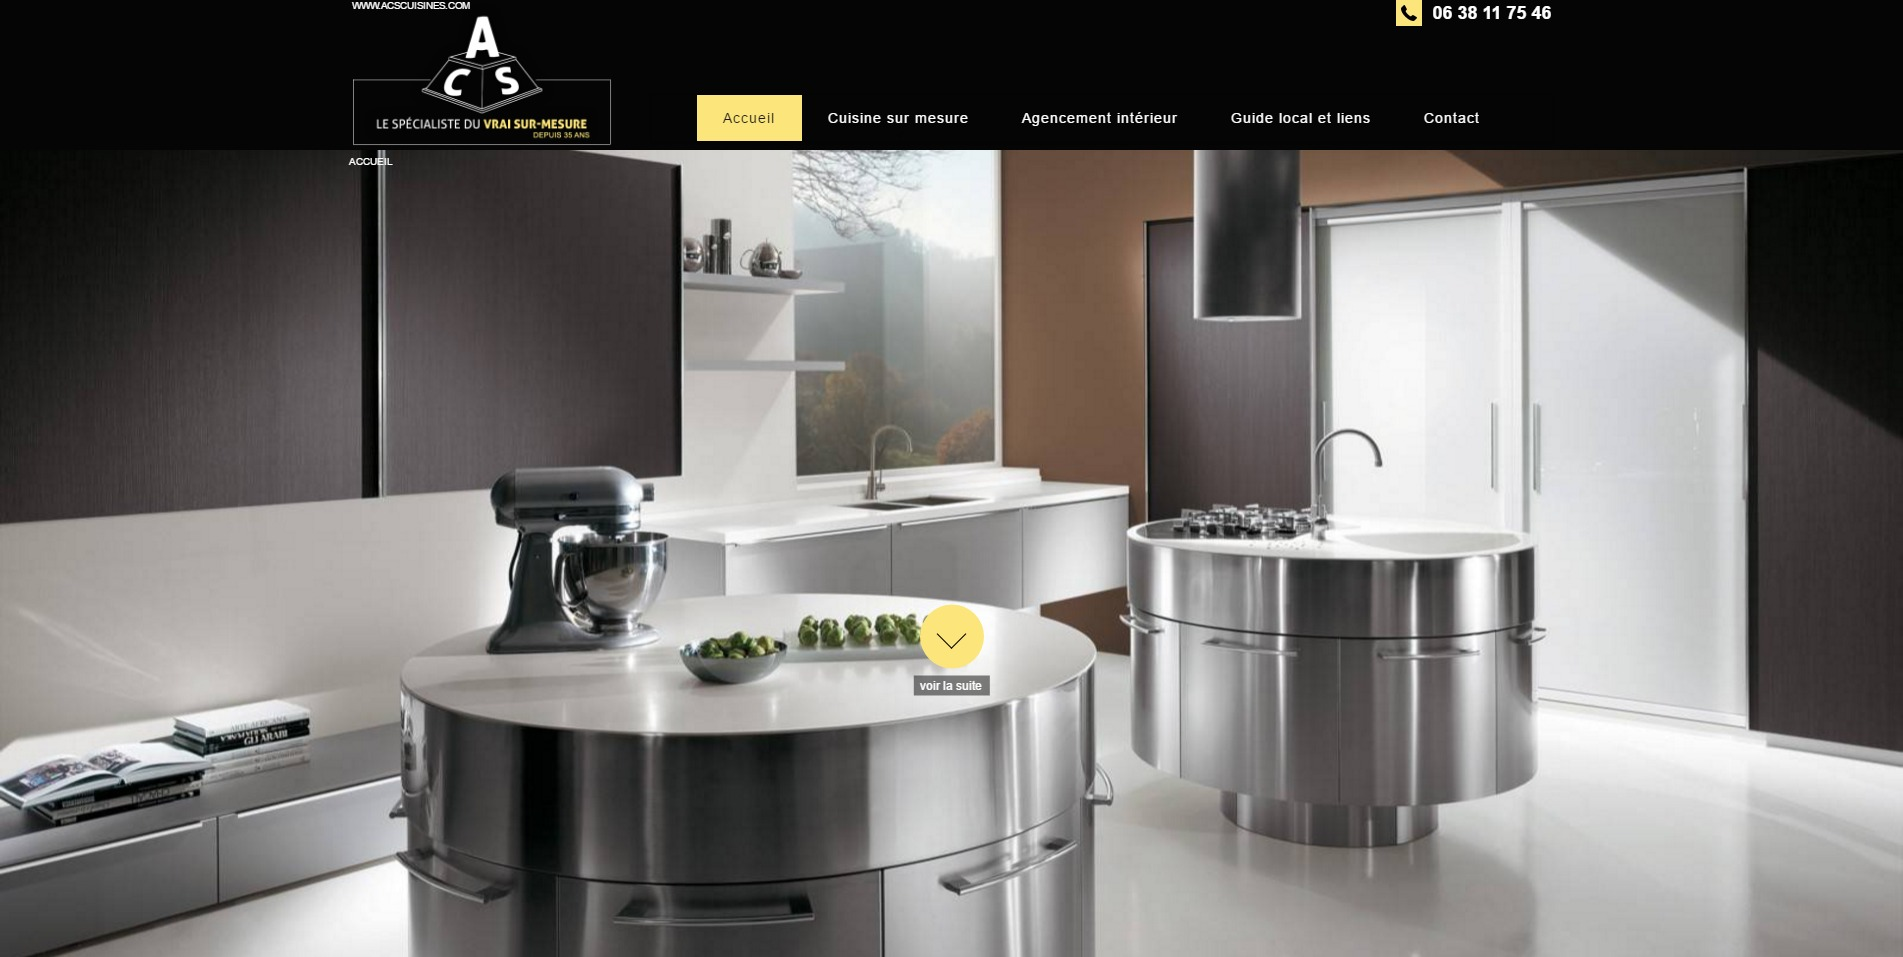 cr ation de cuisine sur mesure marseille acs cuisines agence web marseille jalis. Black Bedroom Furniture Sets. Home Design Ideas